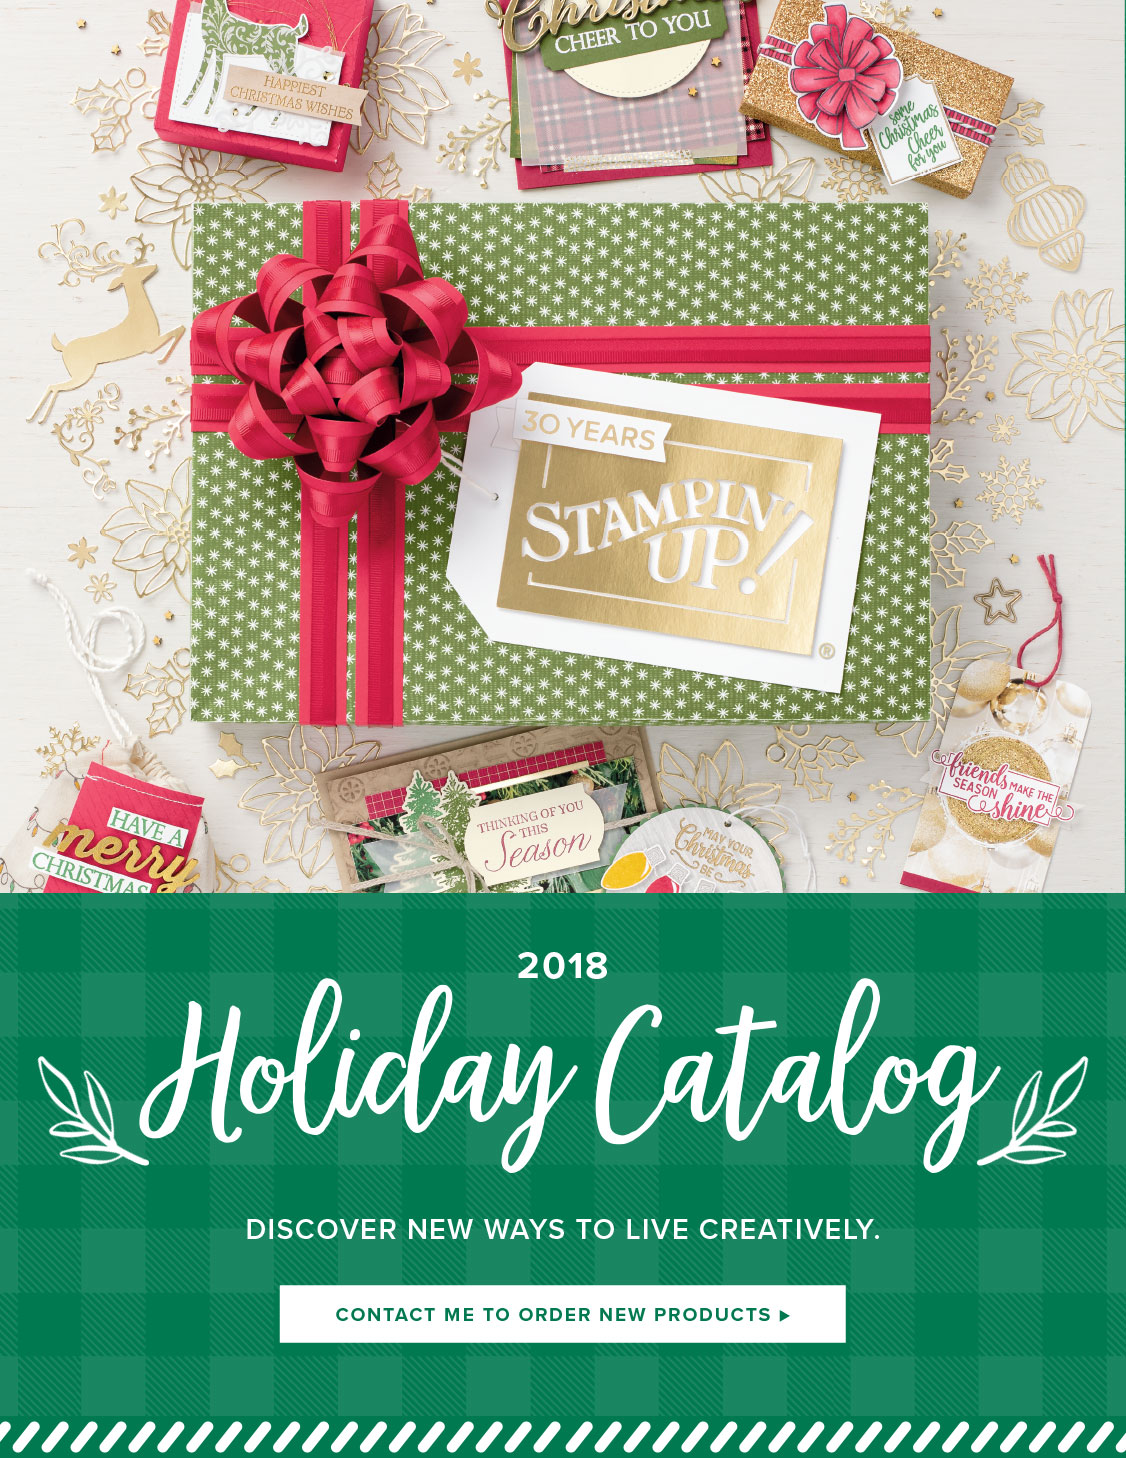 Holiday Catalog 2018!